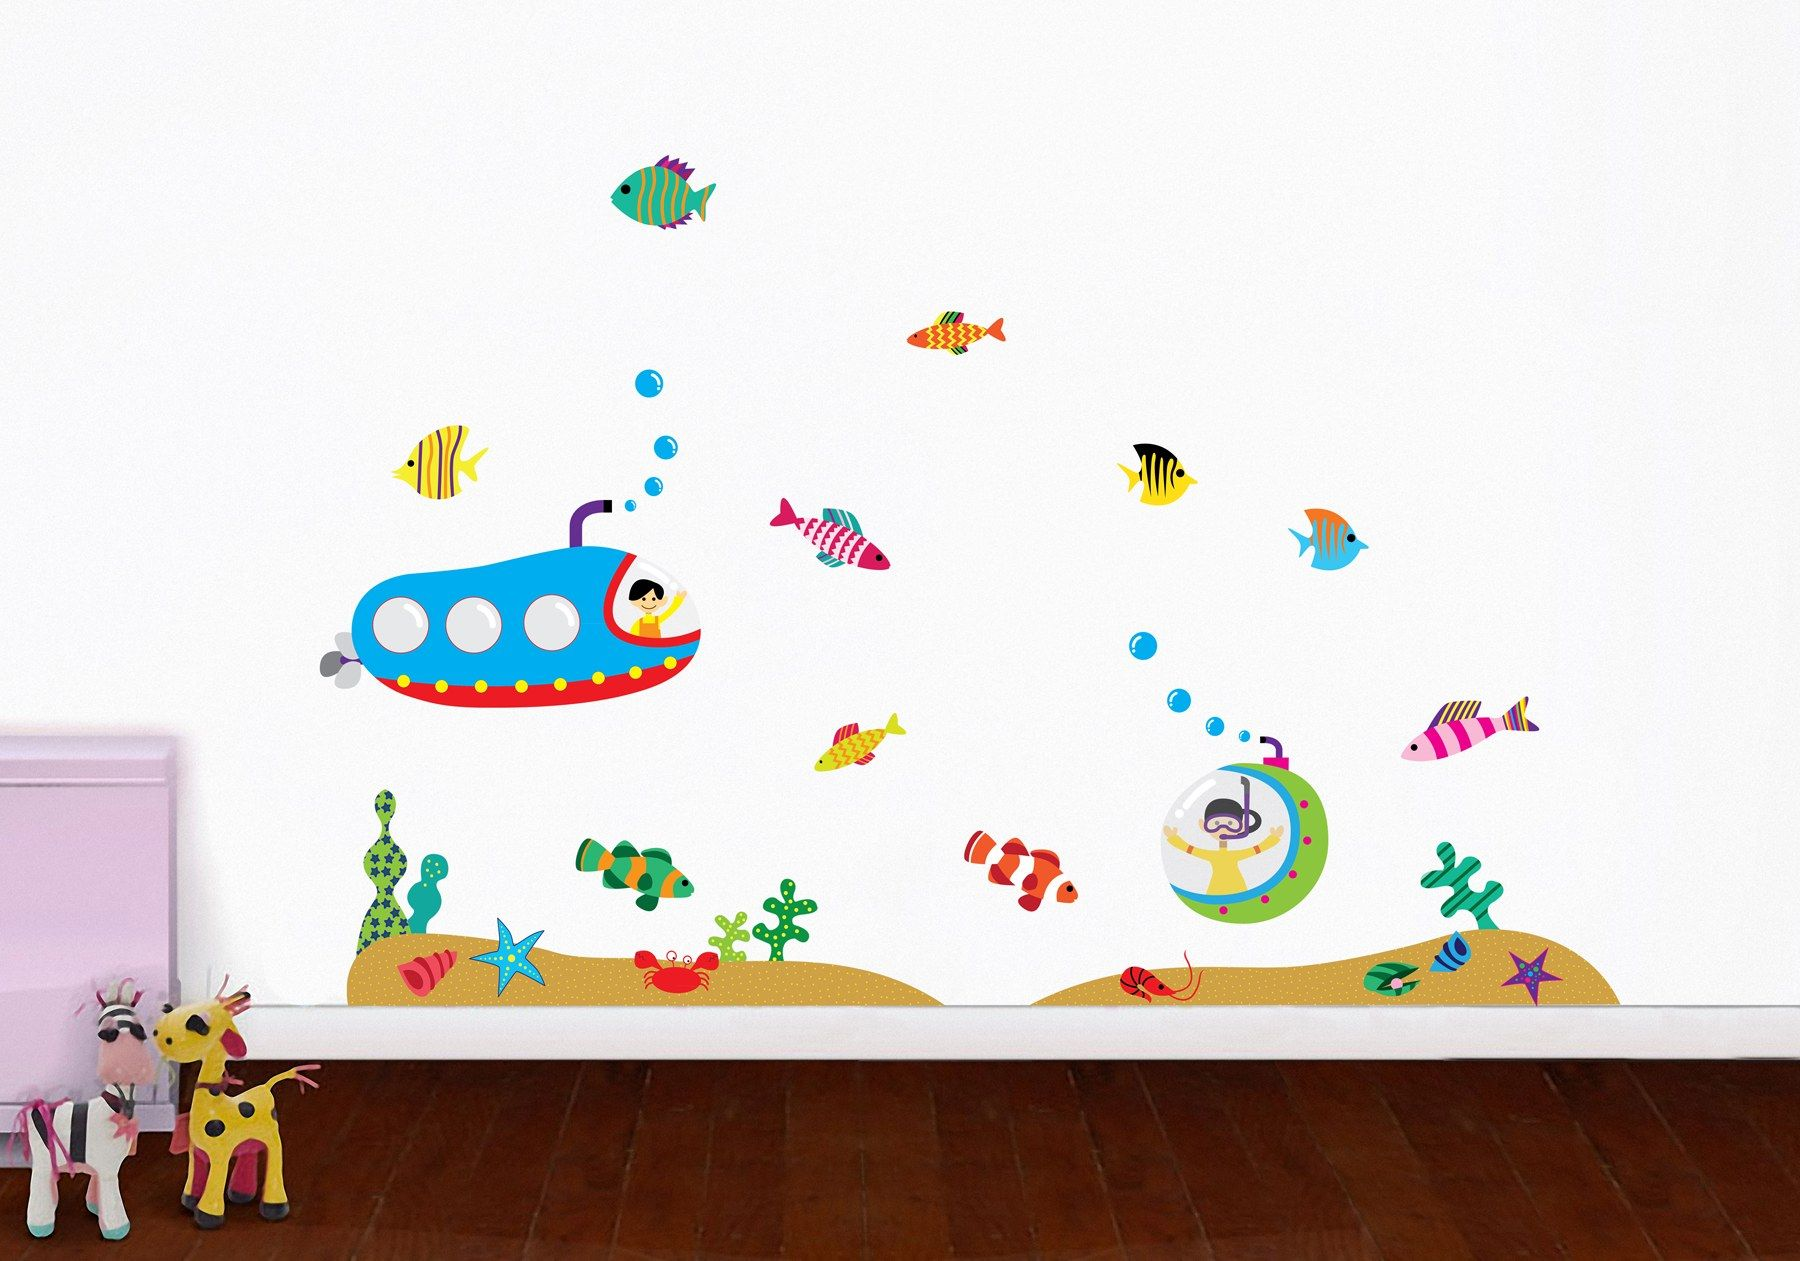 Kids Wall Decals  Great Reasons To Decorate With New Modern - Benefits of wall decals